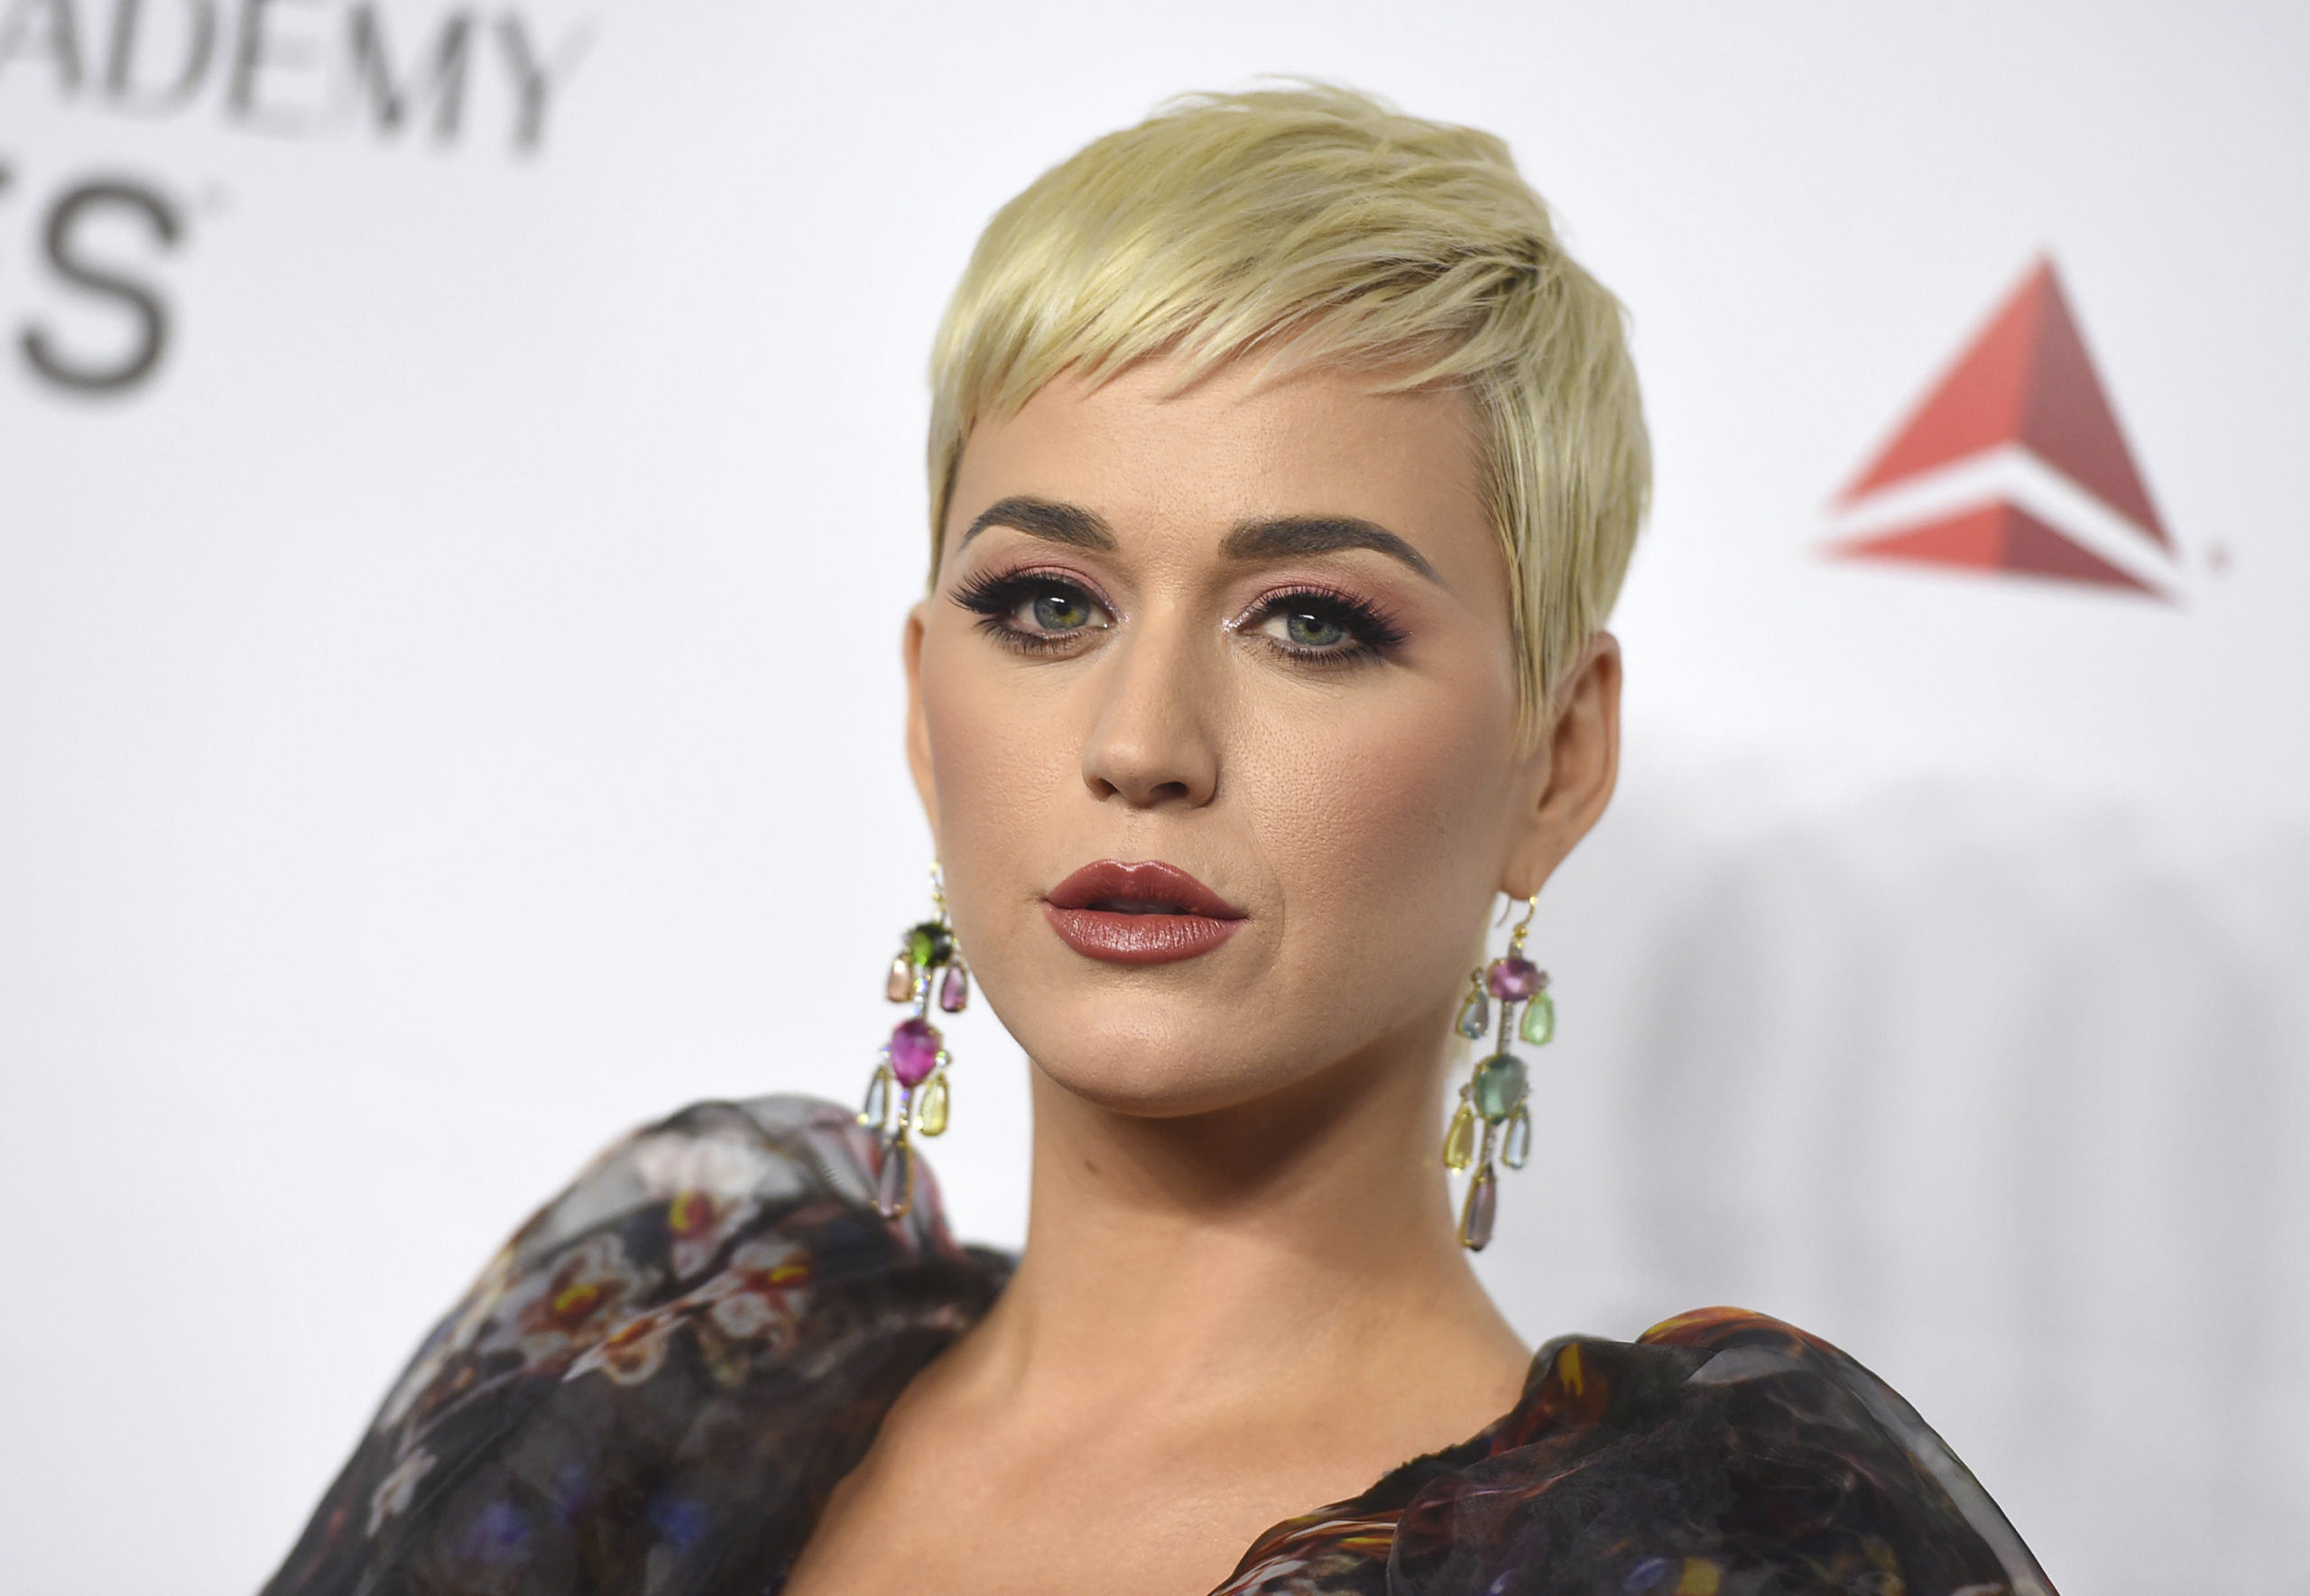 Katy Perry scaled - Katy Perry Net Worth, Pics, Wallpapers, Career and Biography